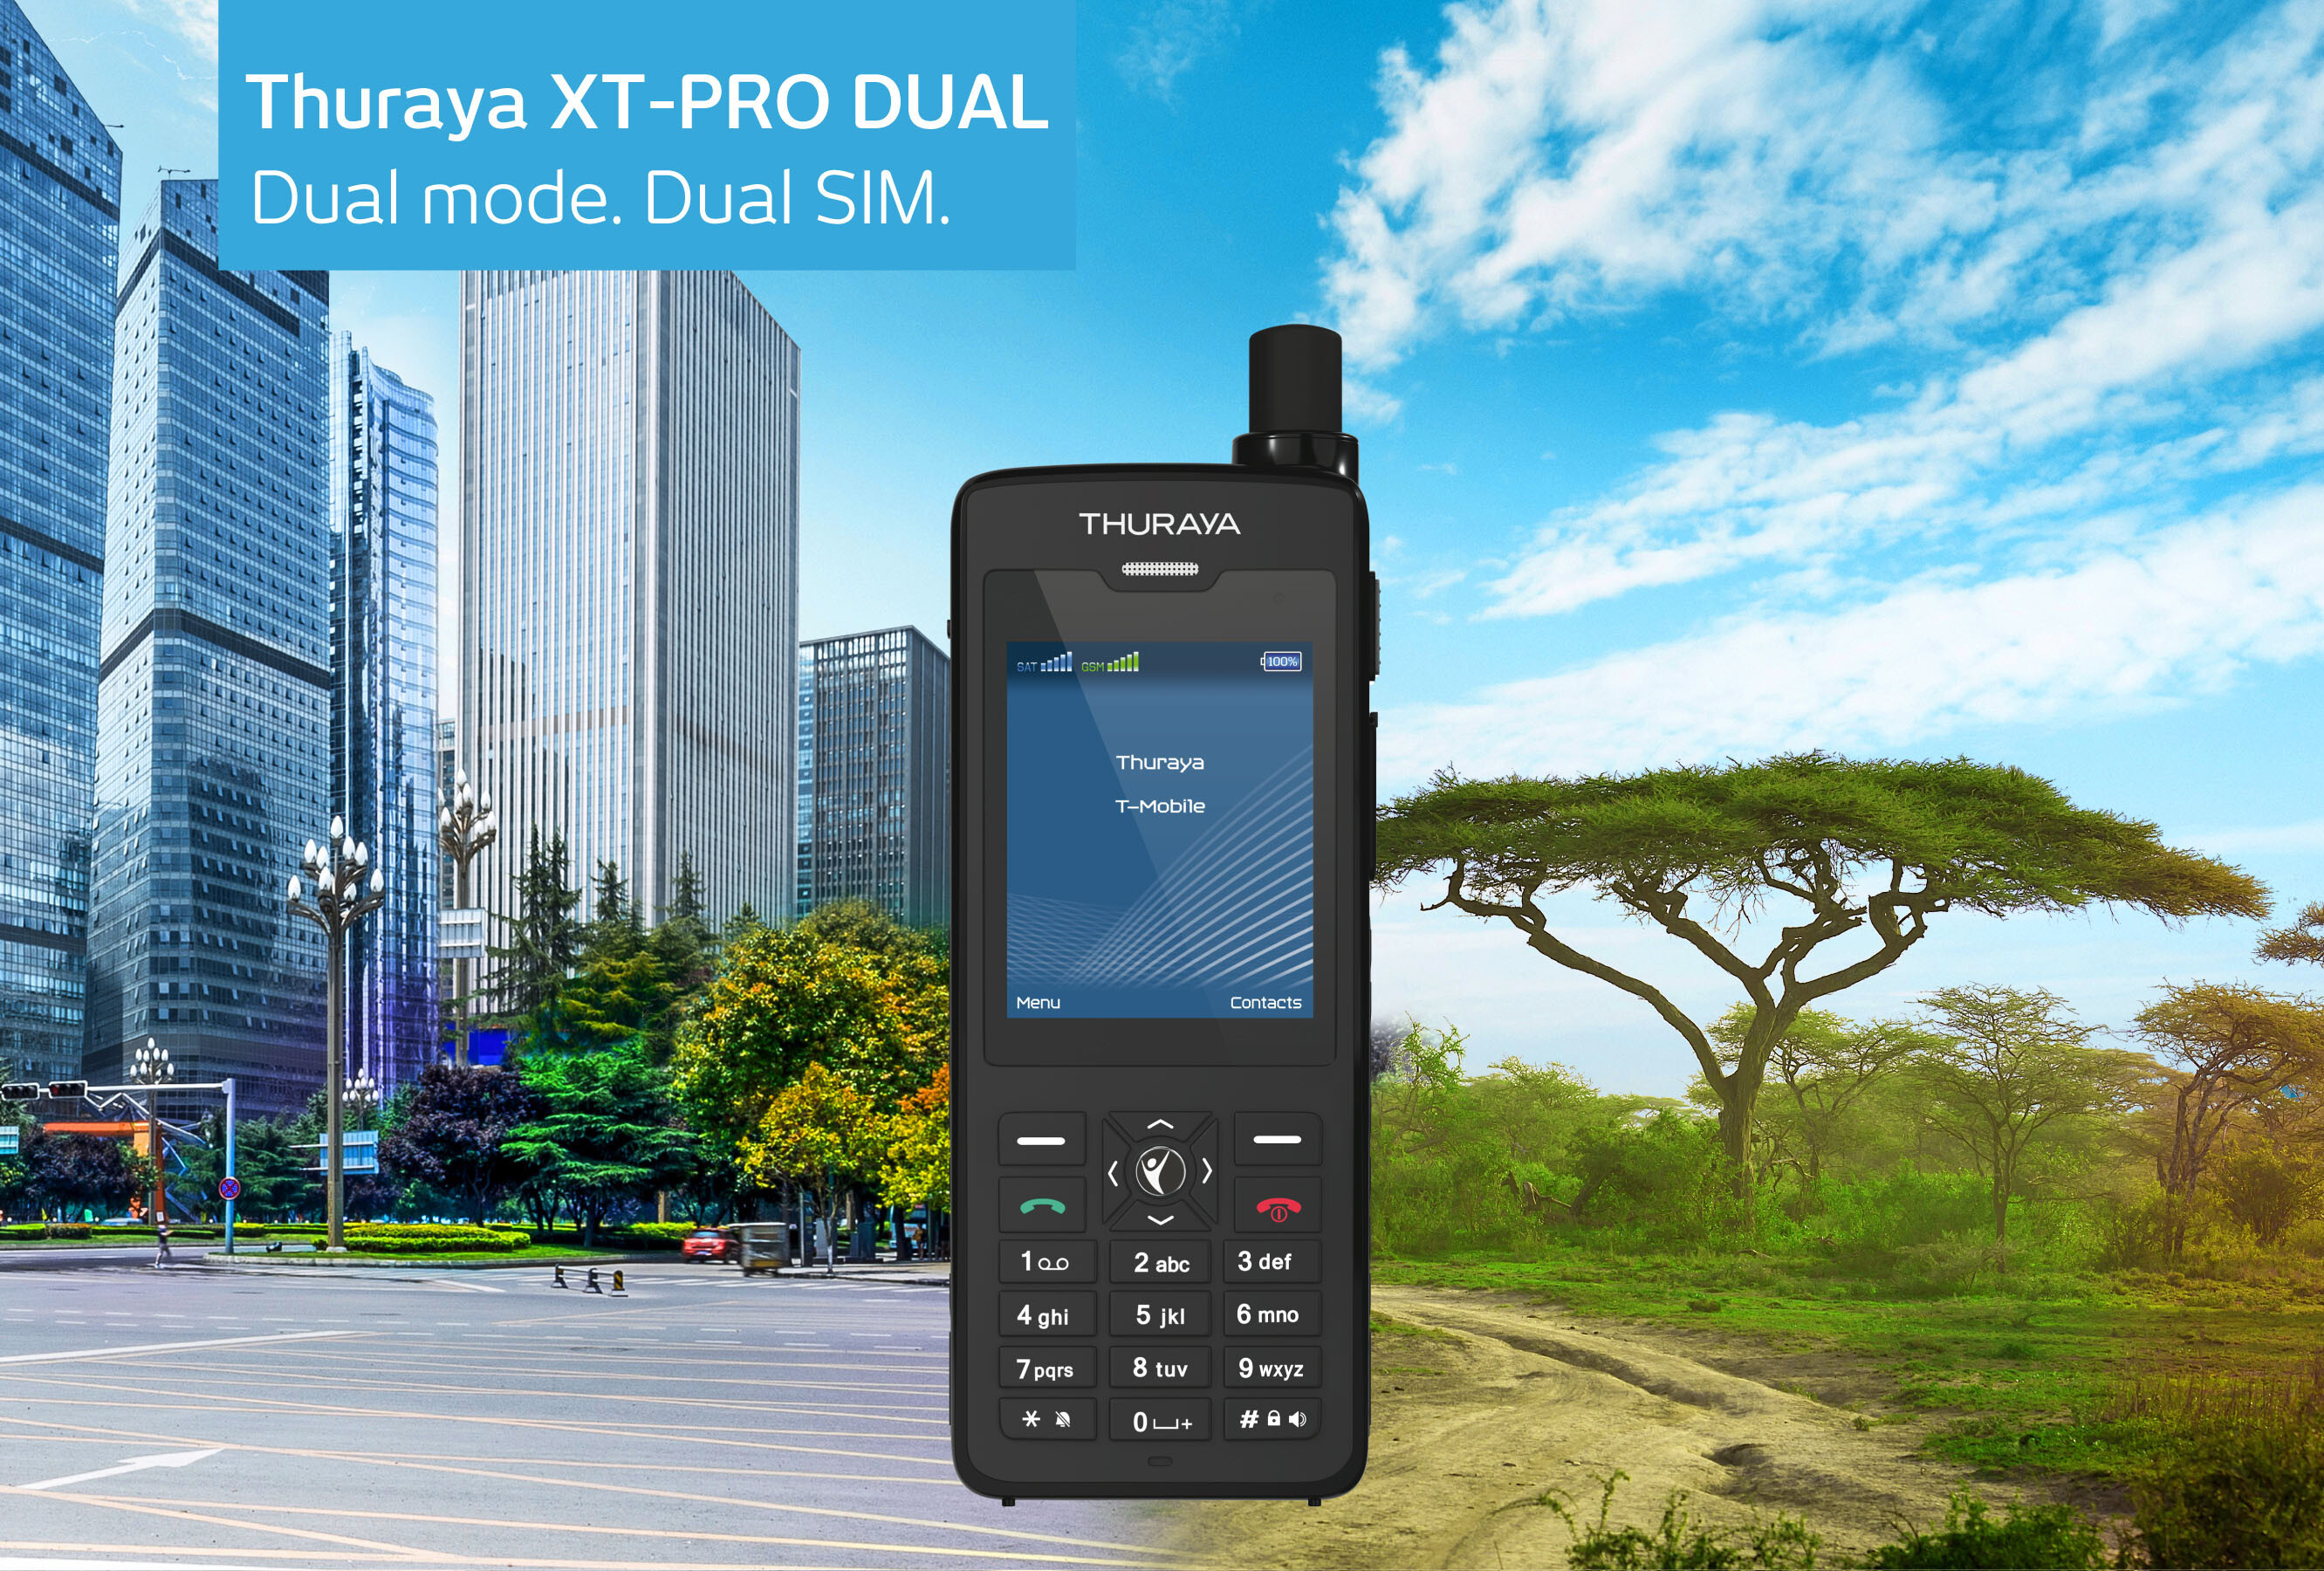 Thuraya launches world's first dual mode, dual SIM phone